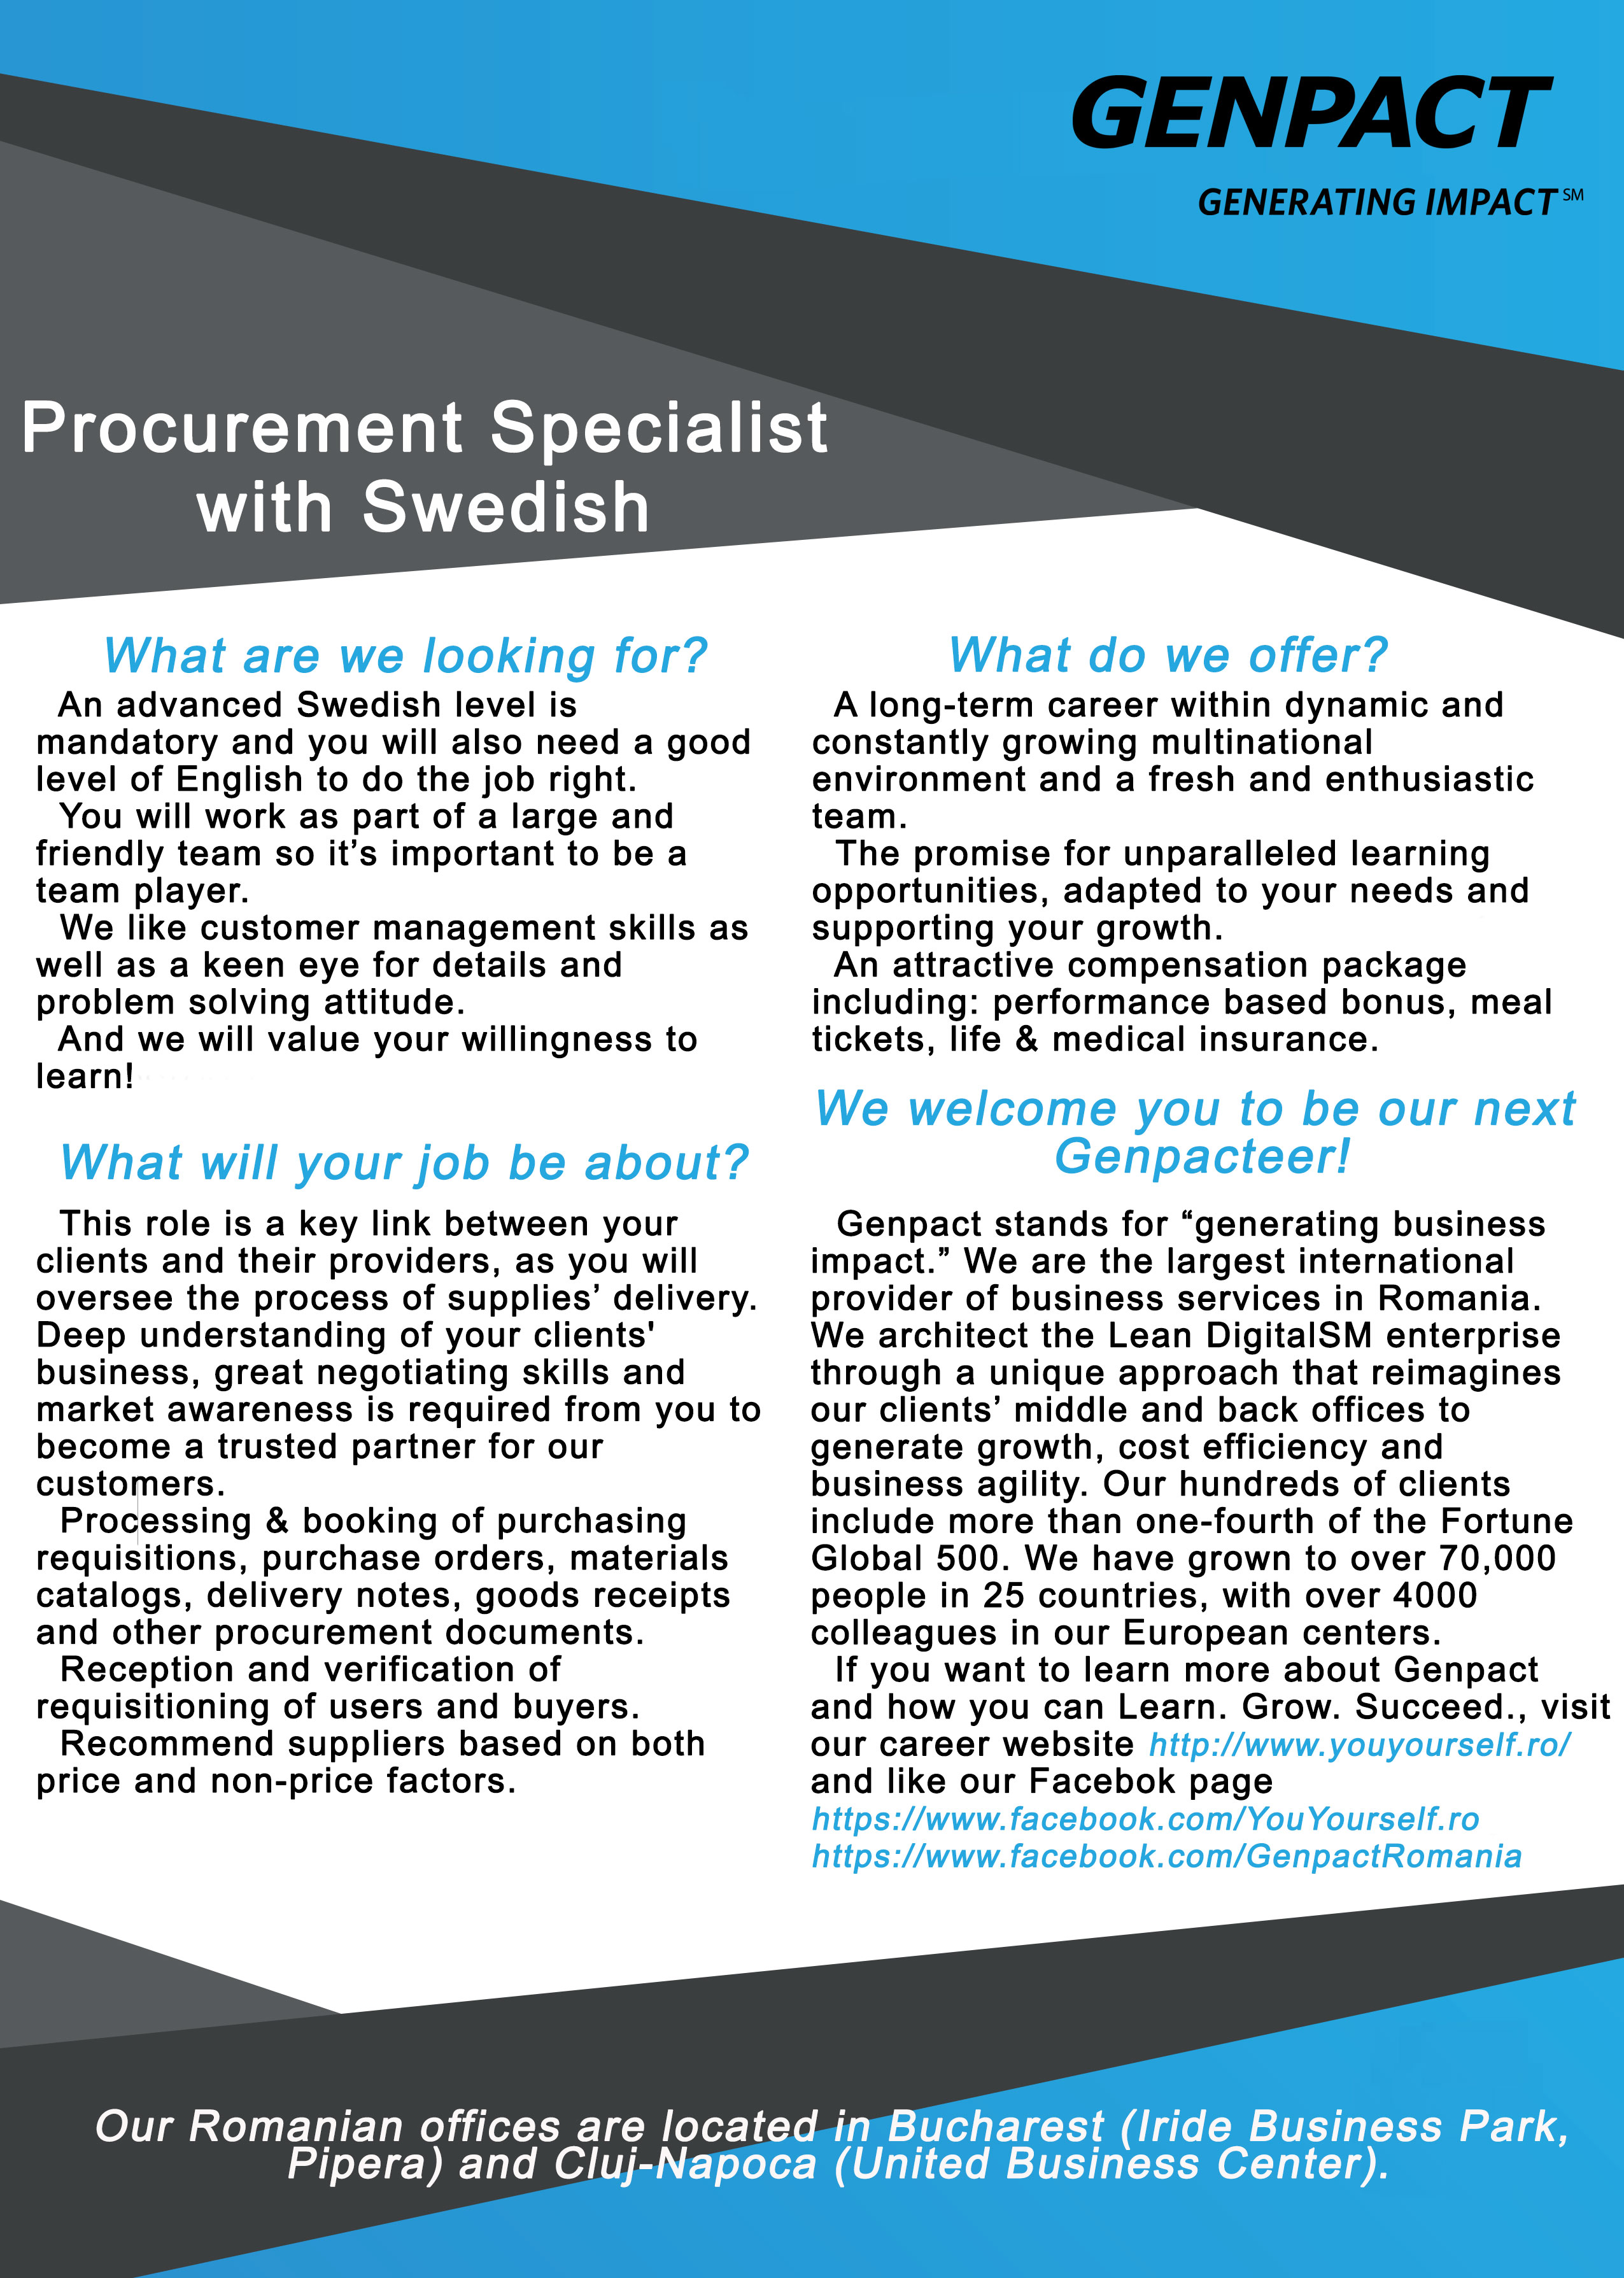 Procurement Specialist with Swedish